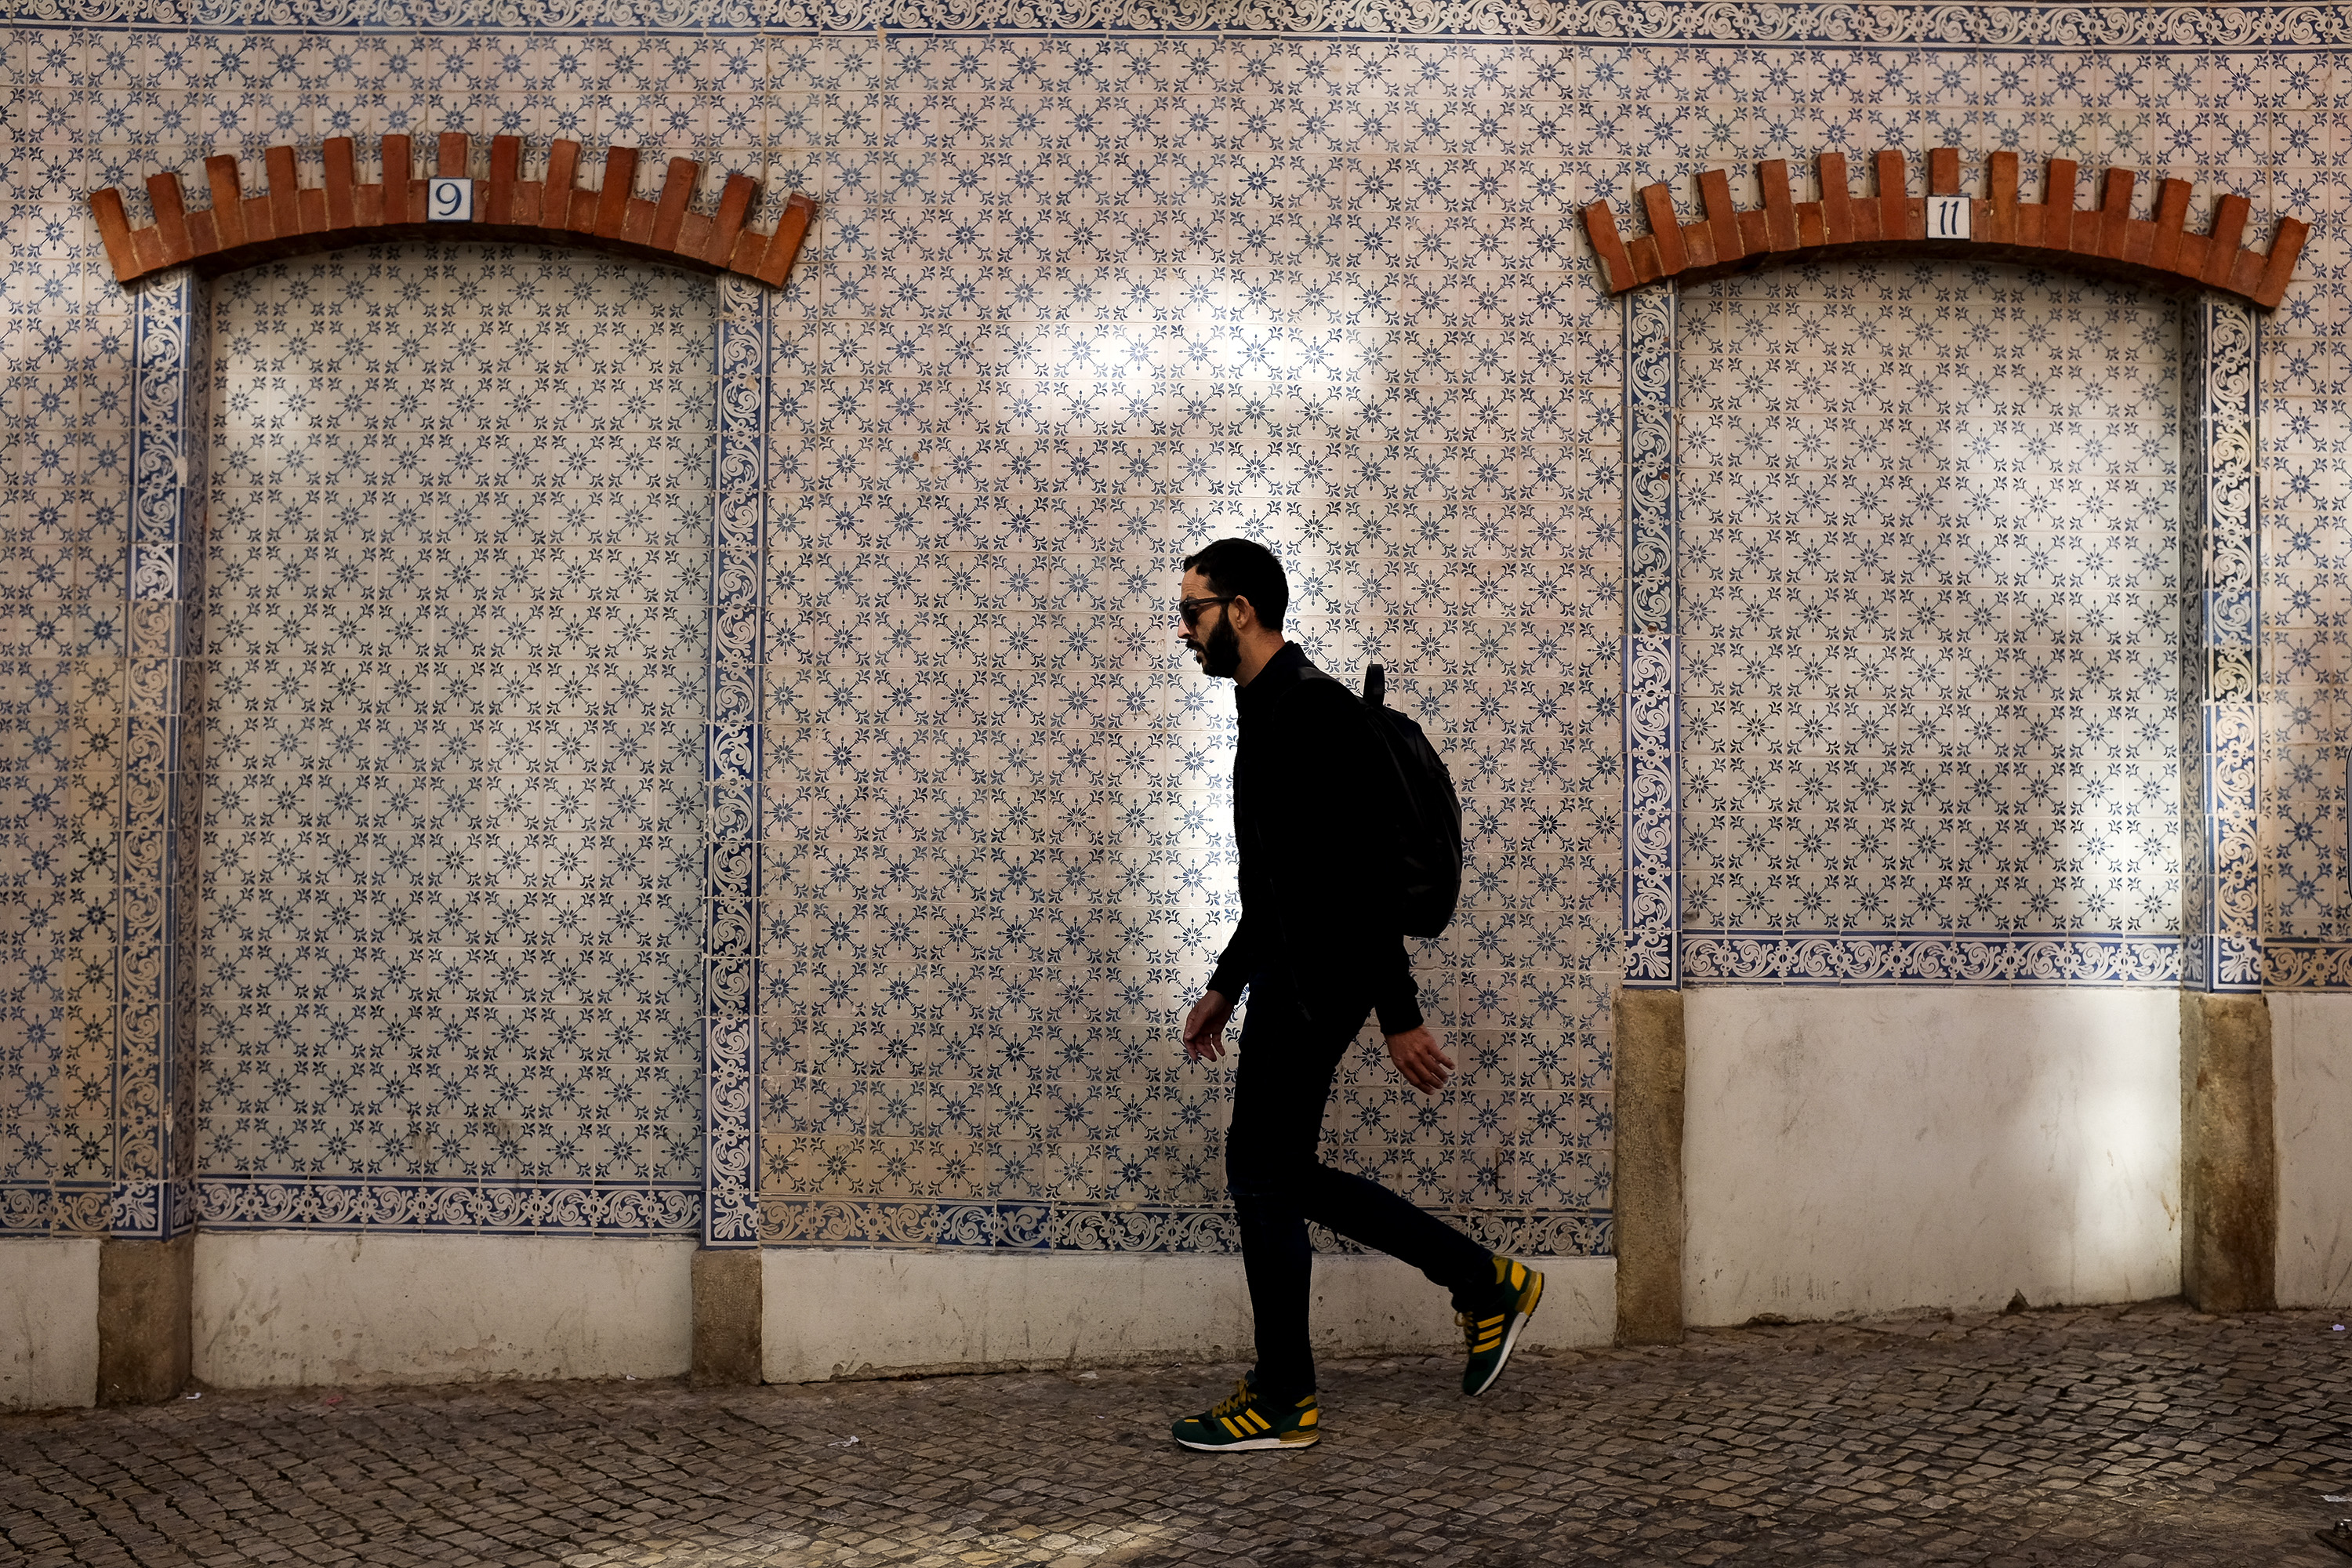 A random person walking downwards with a building frontage covered in tiles in the background